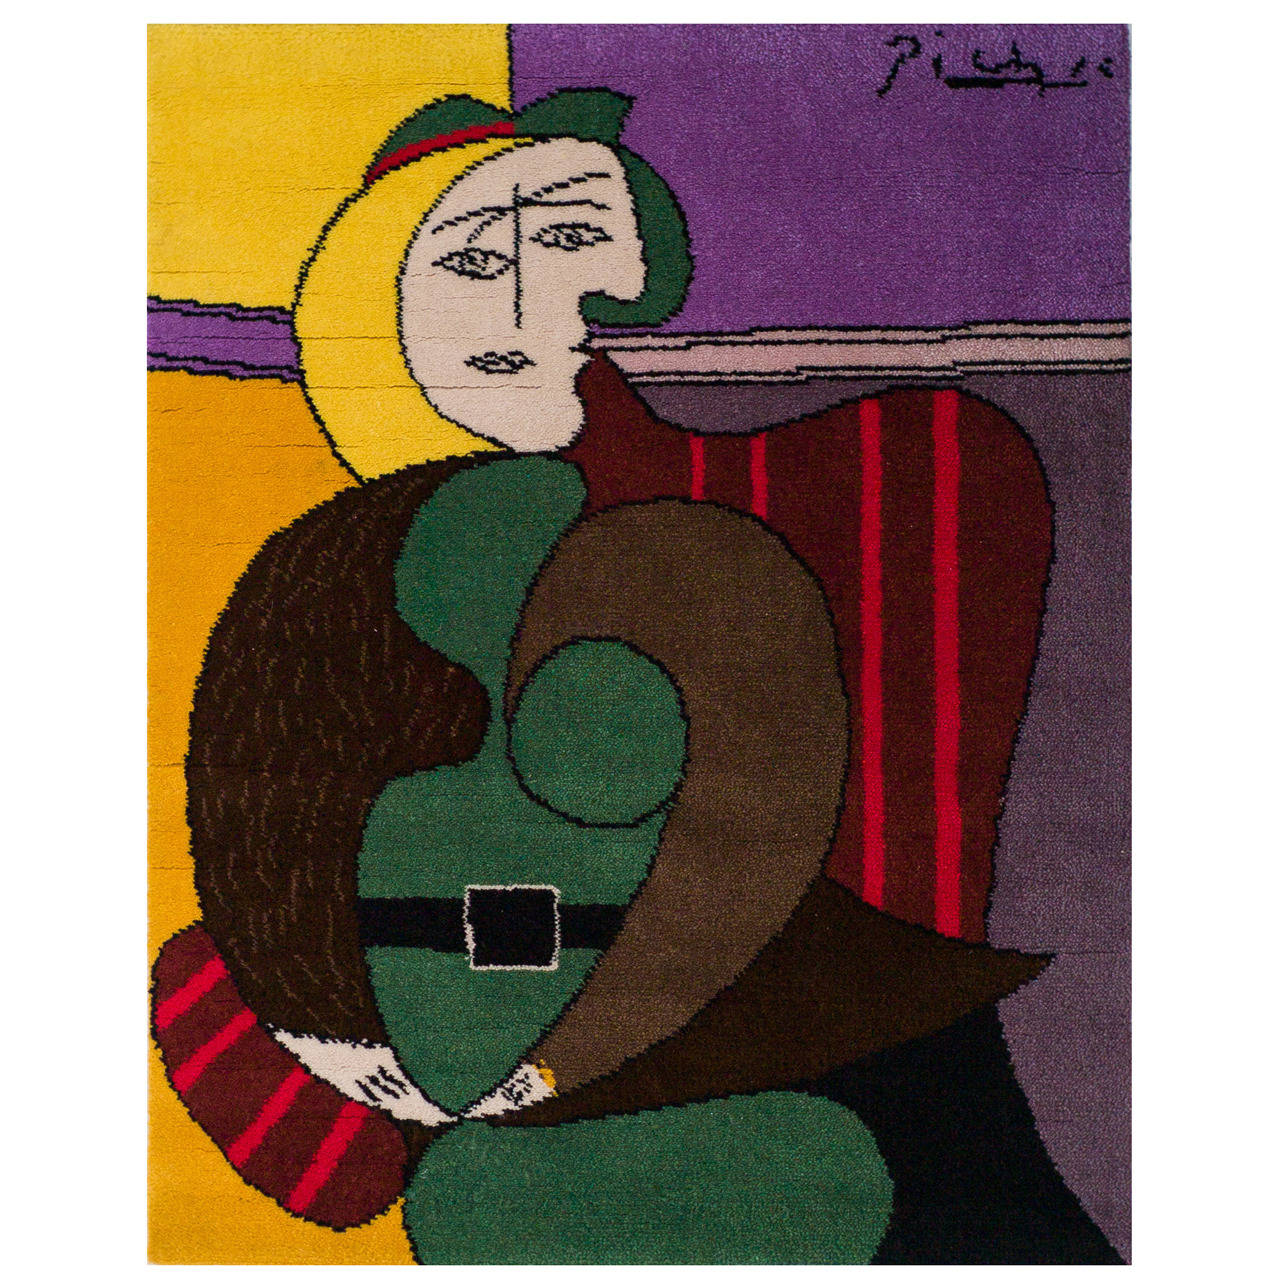 wool tapestry after a design by picasso femme assise dans un fauteuil rouge for sale at 1stdibs. Black Bedroom Furniture Sets. Home Design Ideas